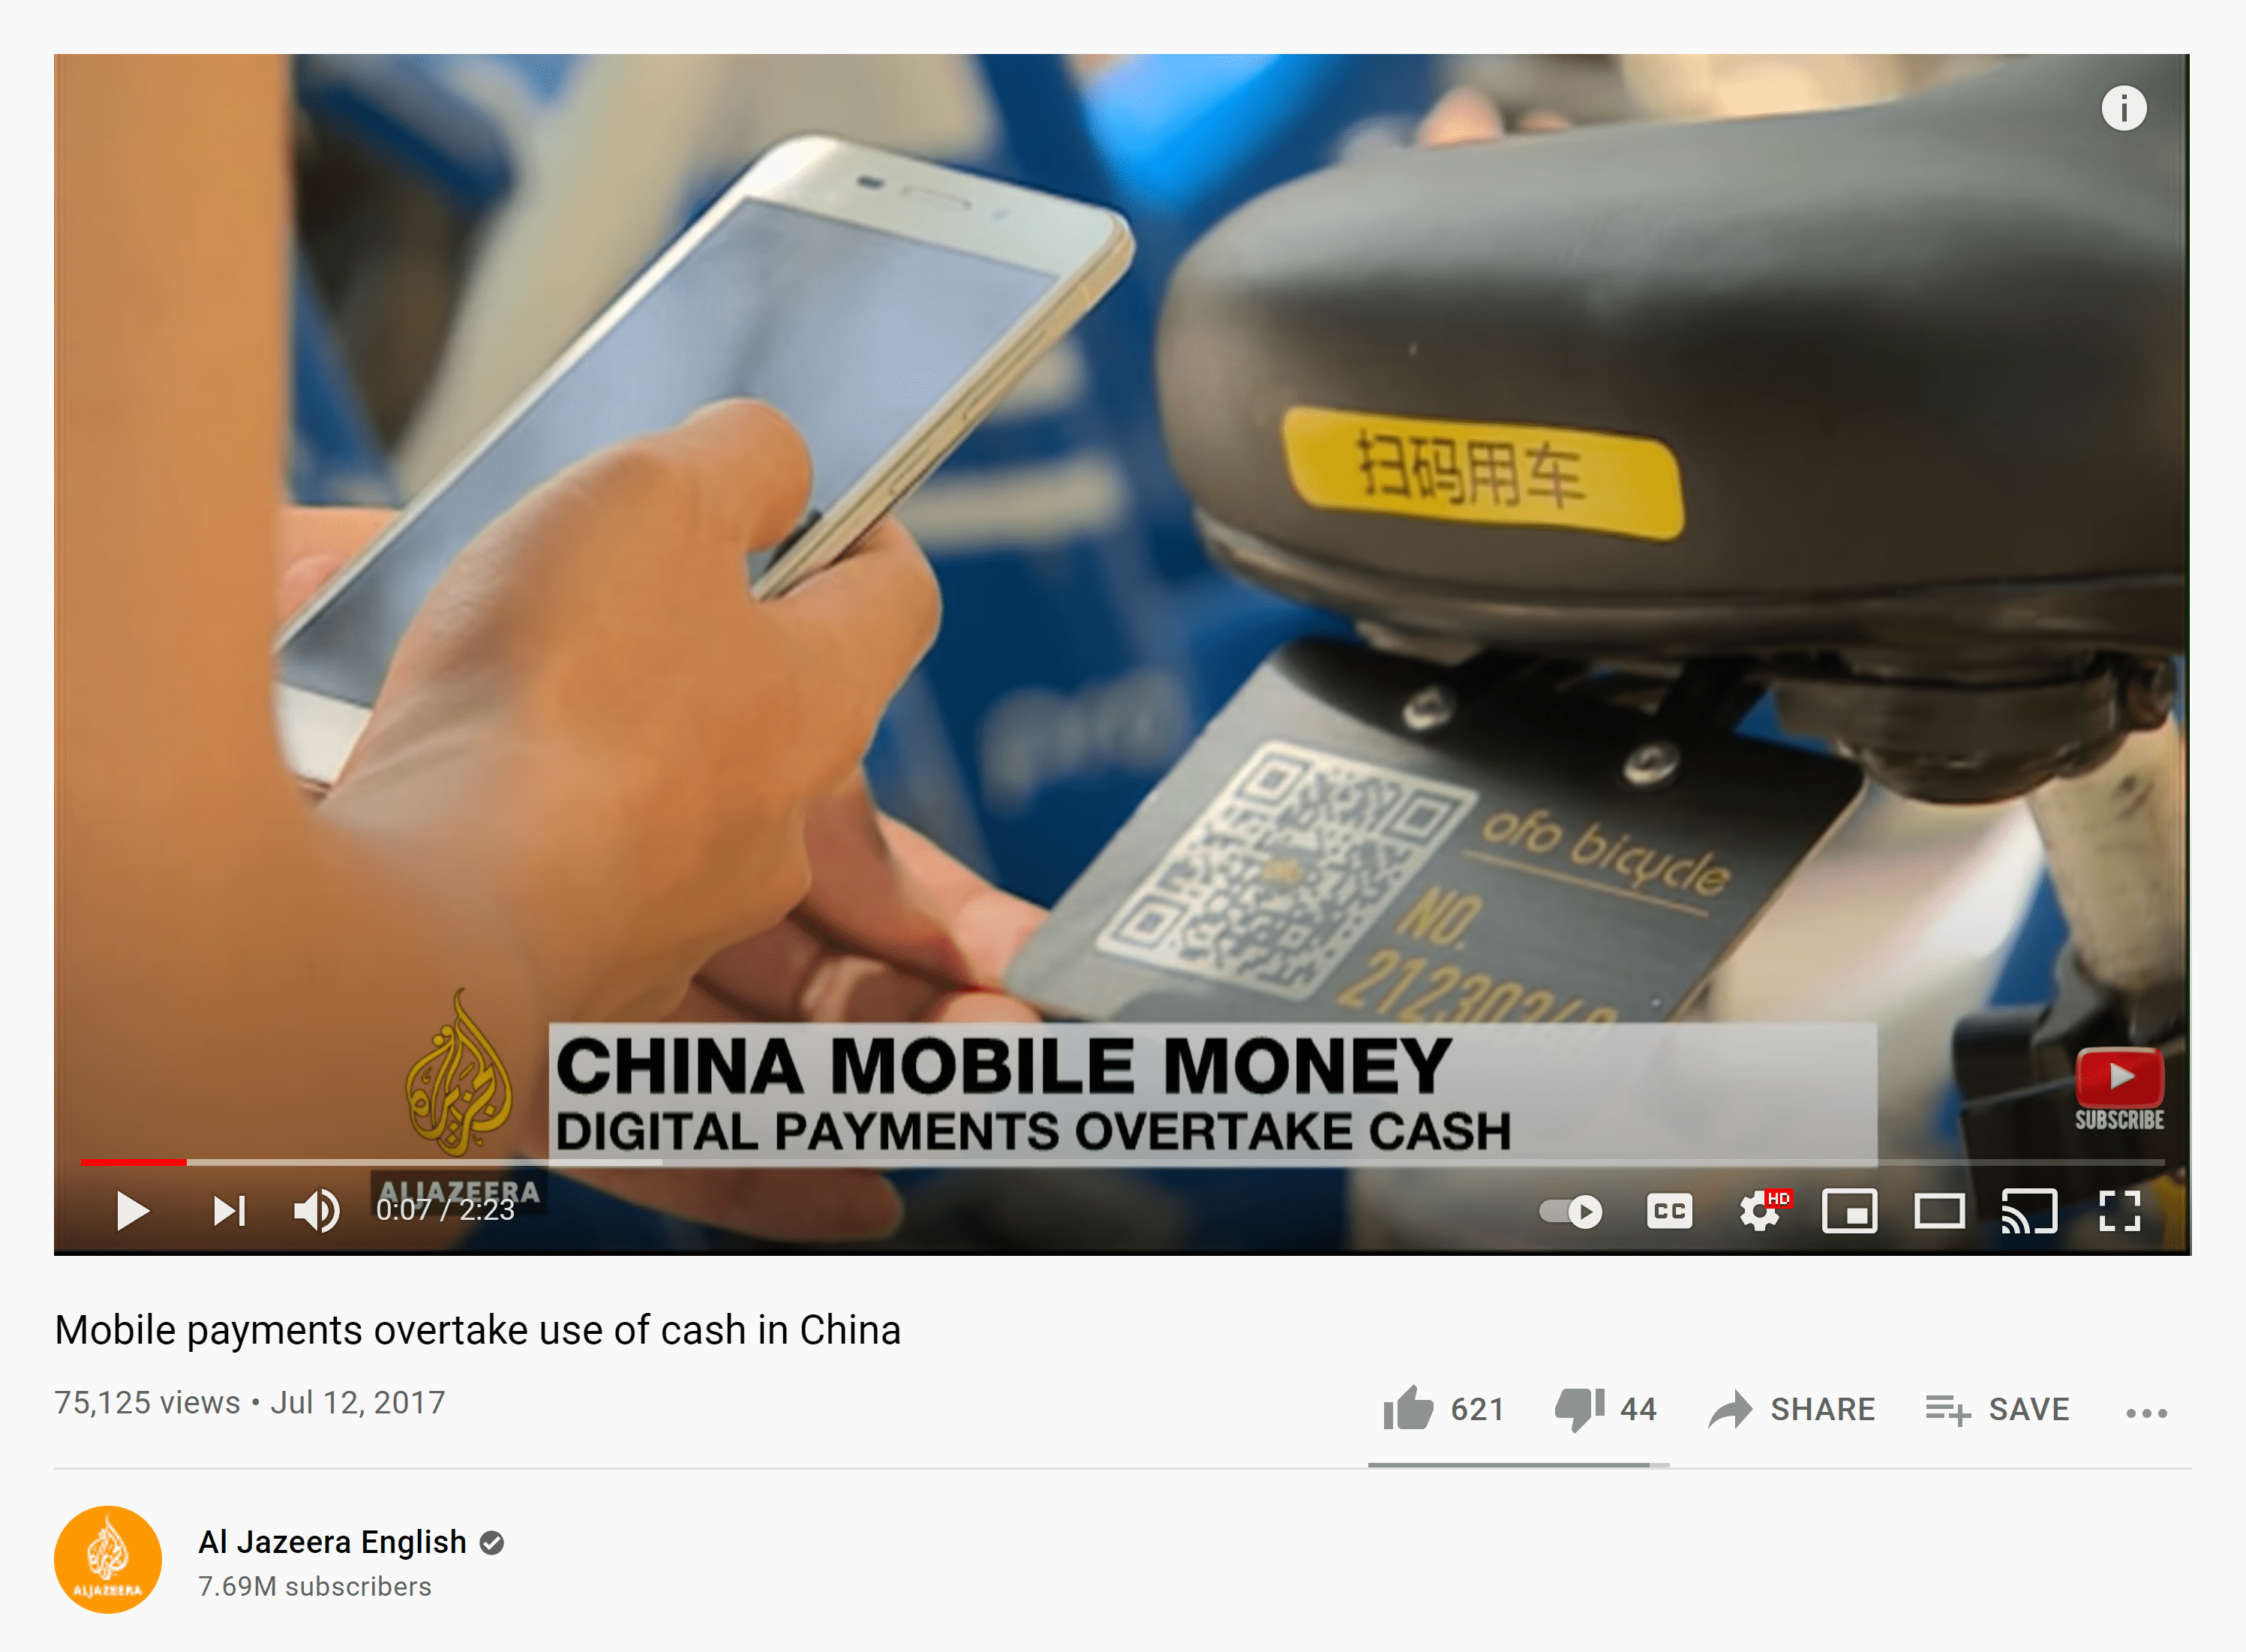 proximity-mobile-payment-min.png